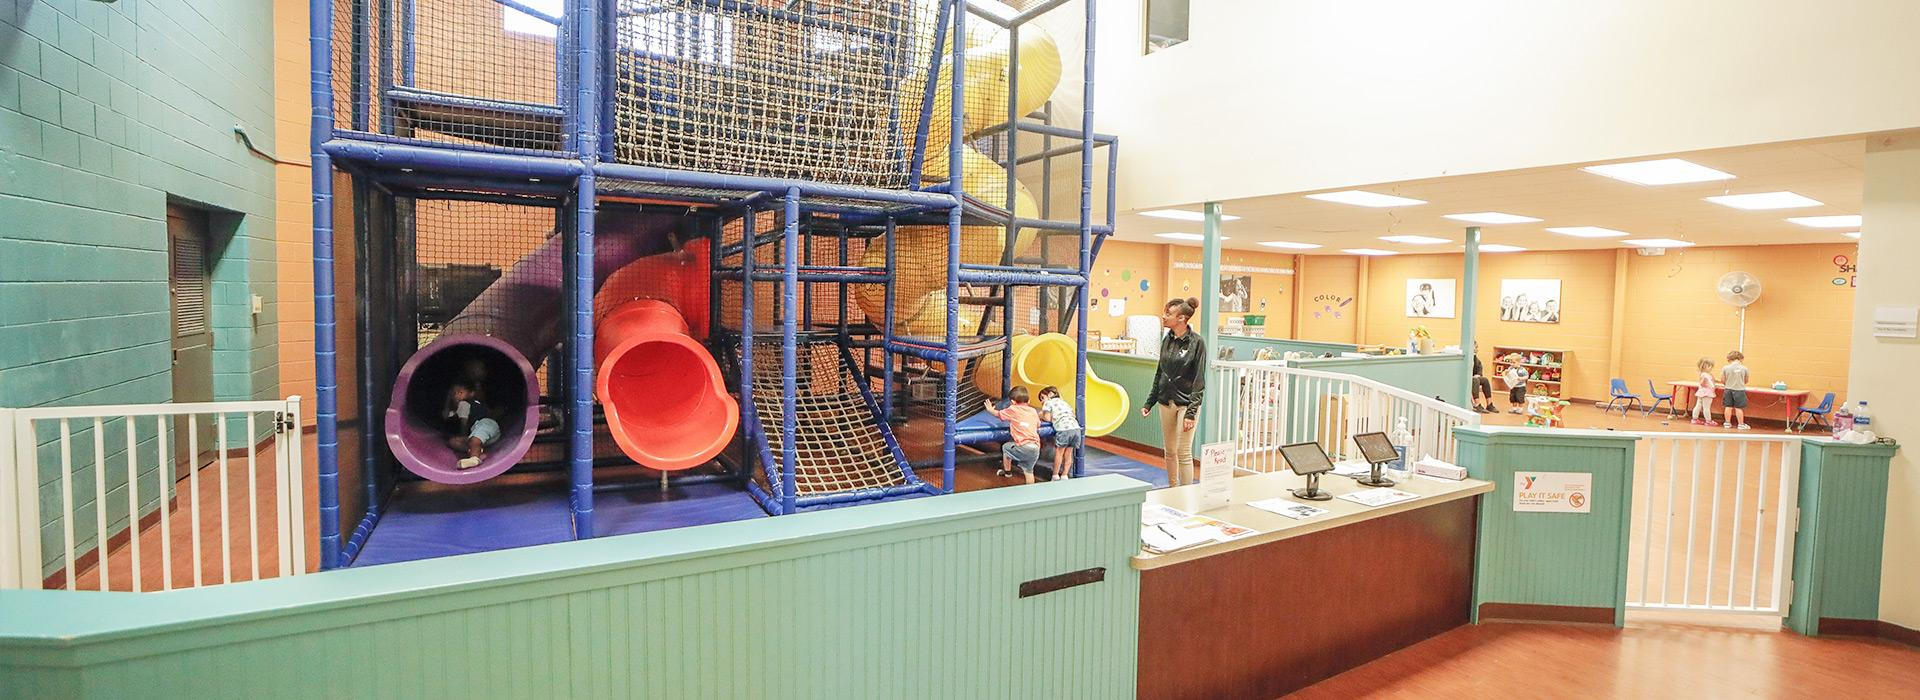 Child care play area including indoor climbing structure with slides